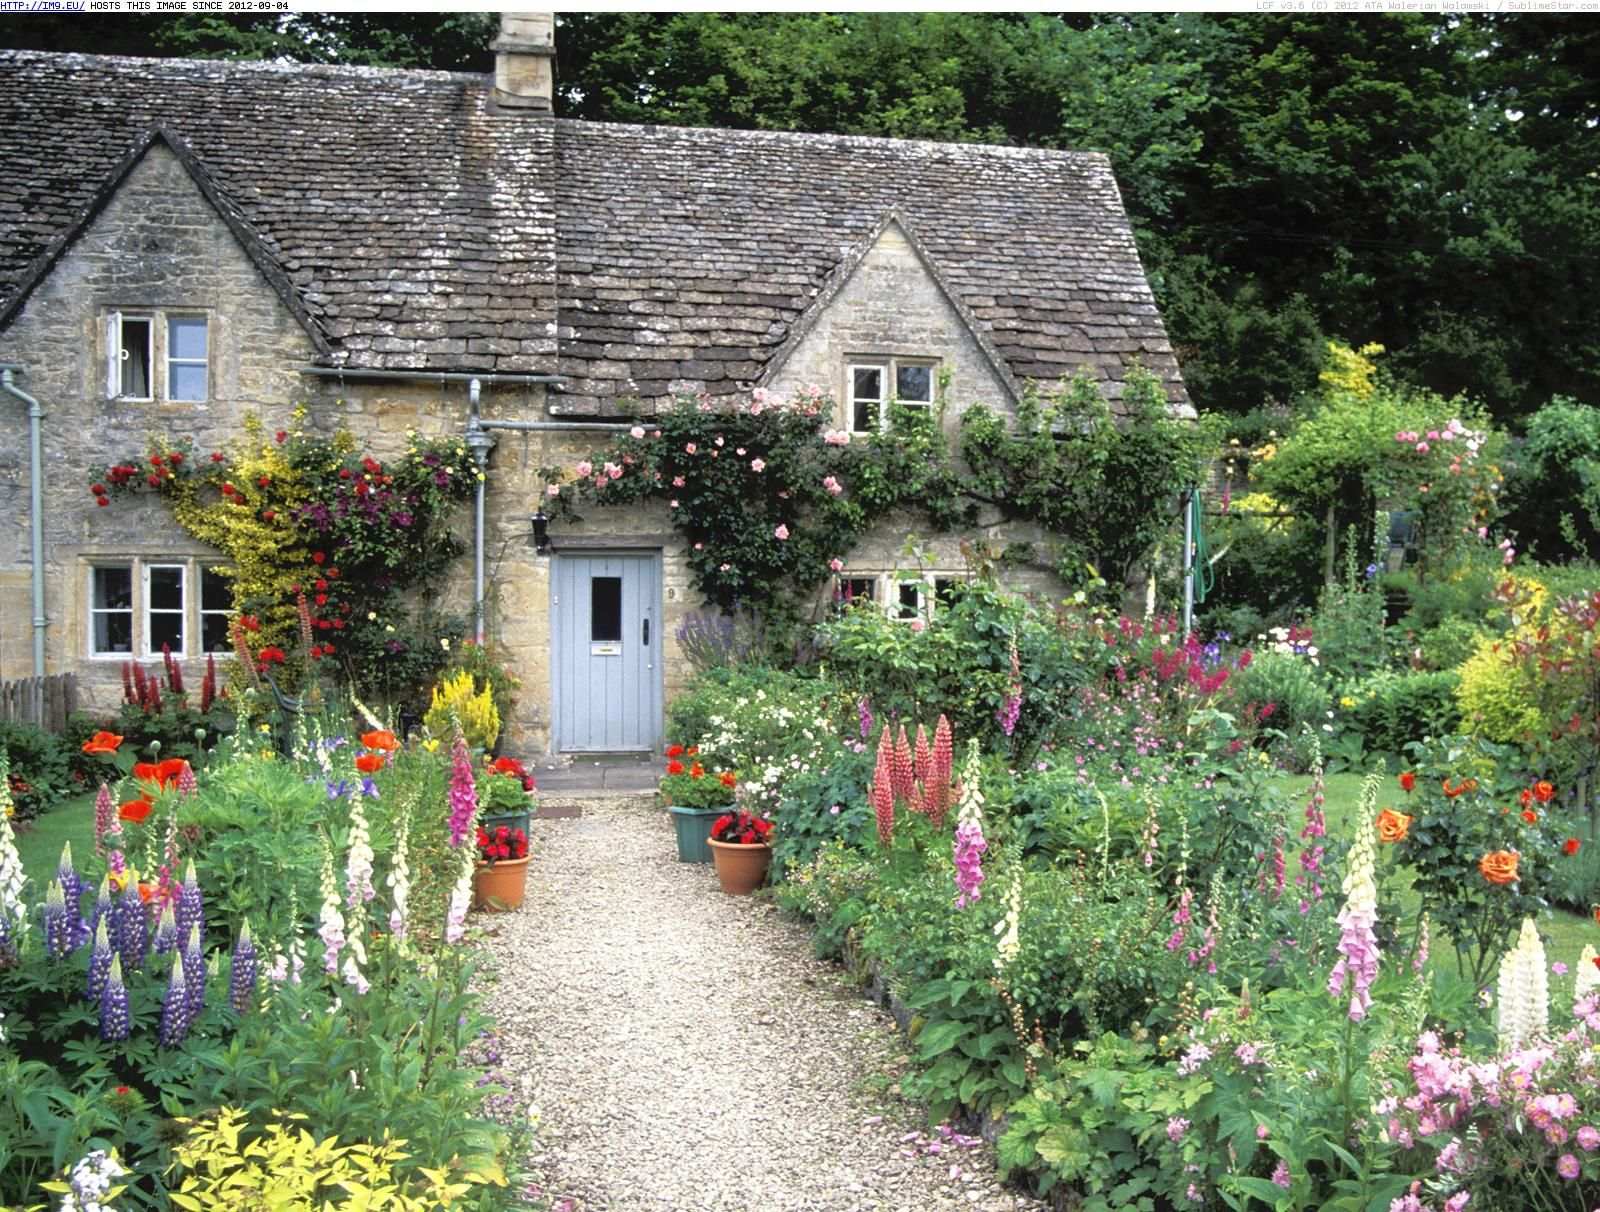 Country cottage garden - Cottage Garden Bilbury Gloucestershire England Beautiful Photos 1600x1212 Pictures Of Gardens